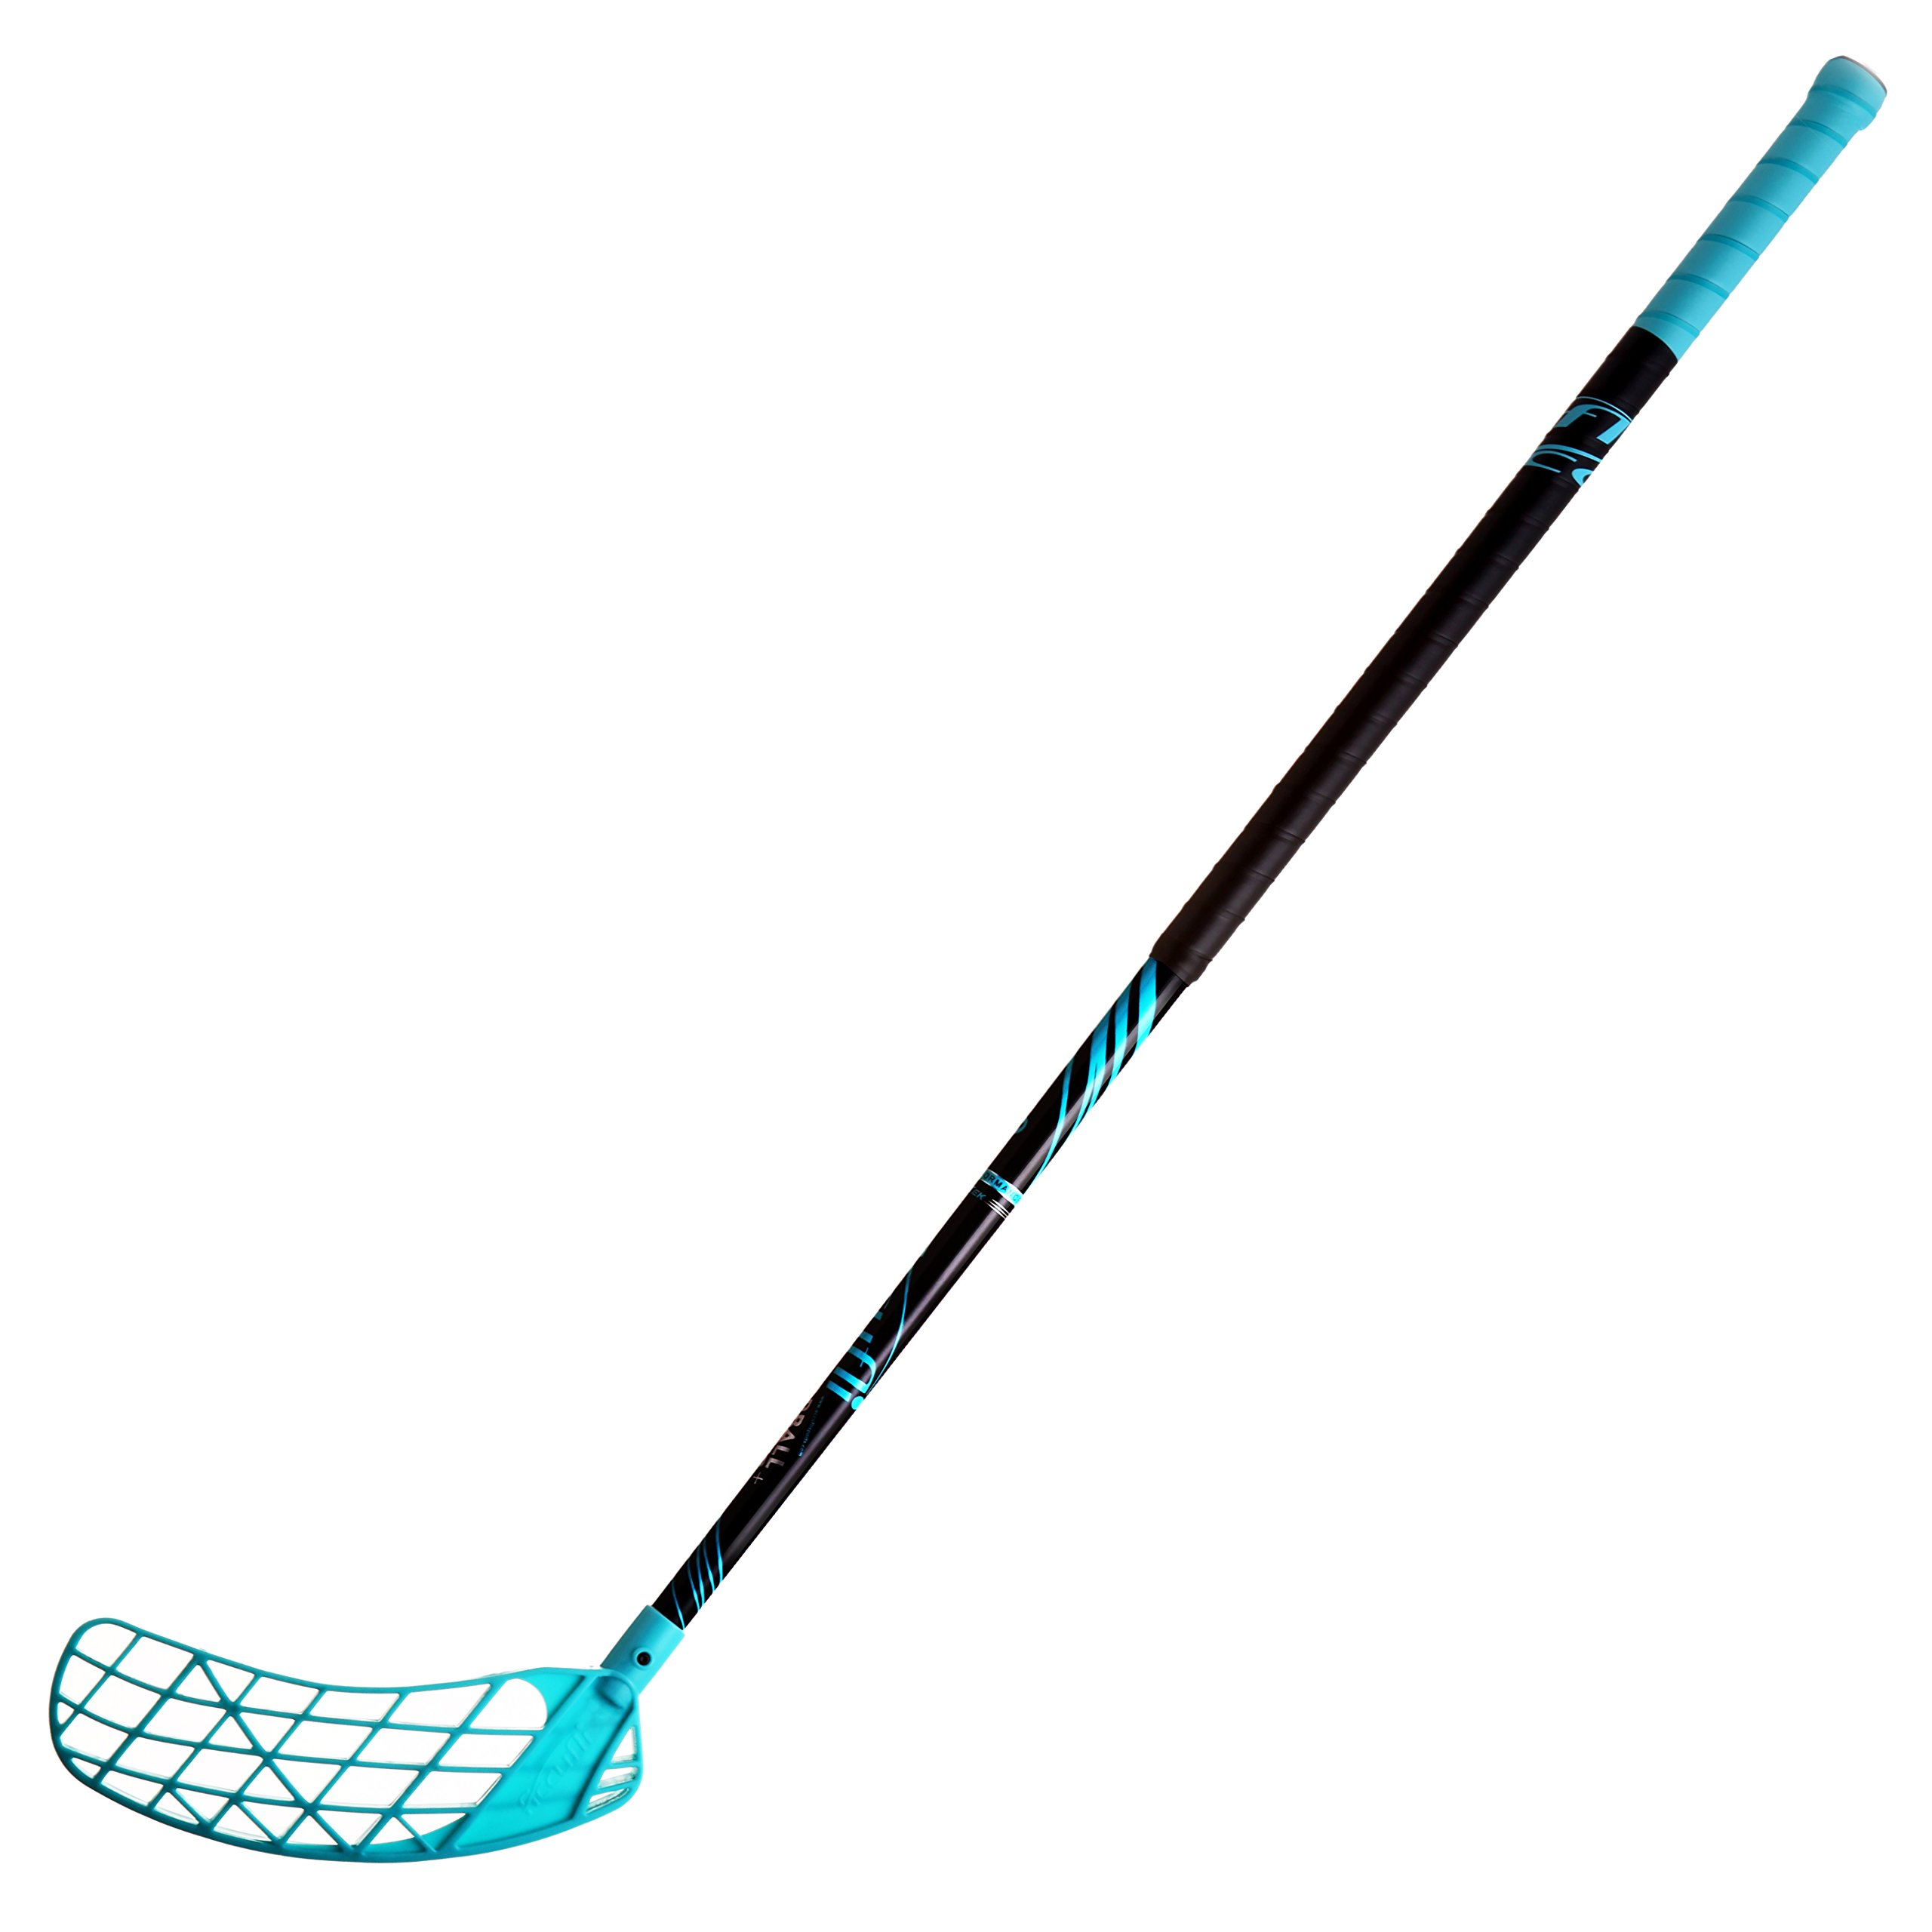 ACCUFLI Floorball Stick A90 Left Stick 40inch Curved Blade (Teal)